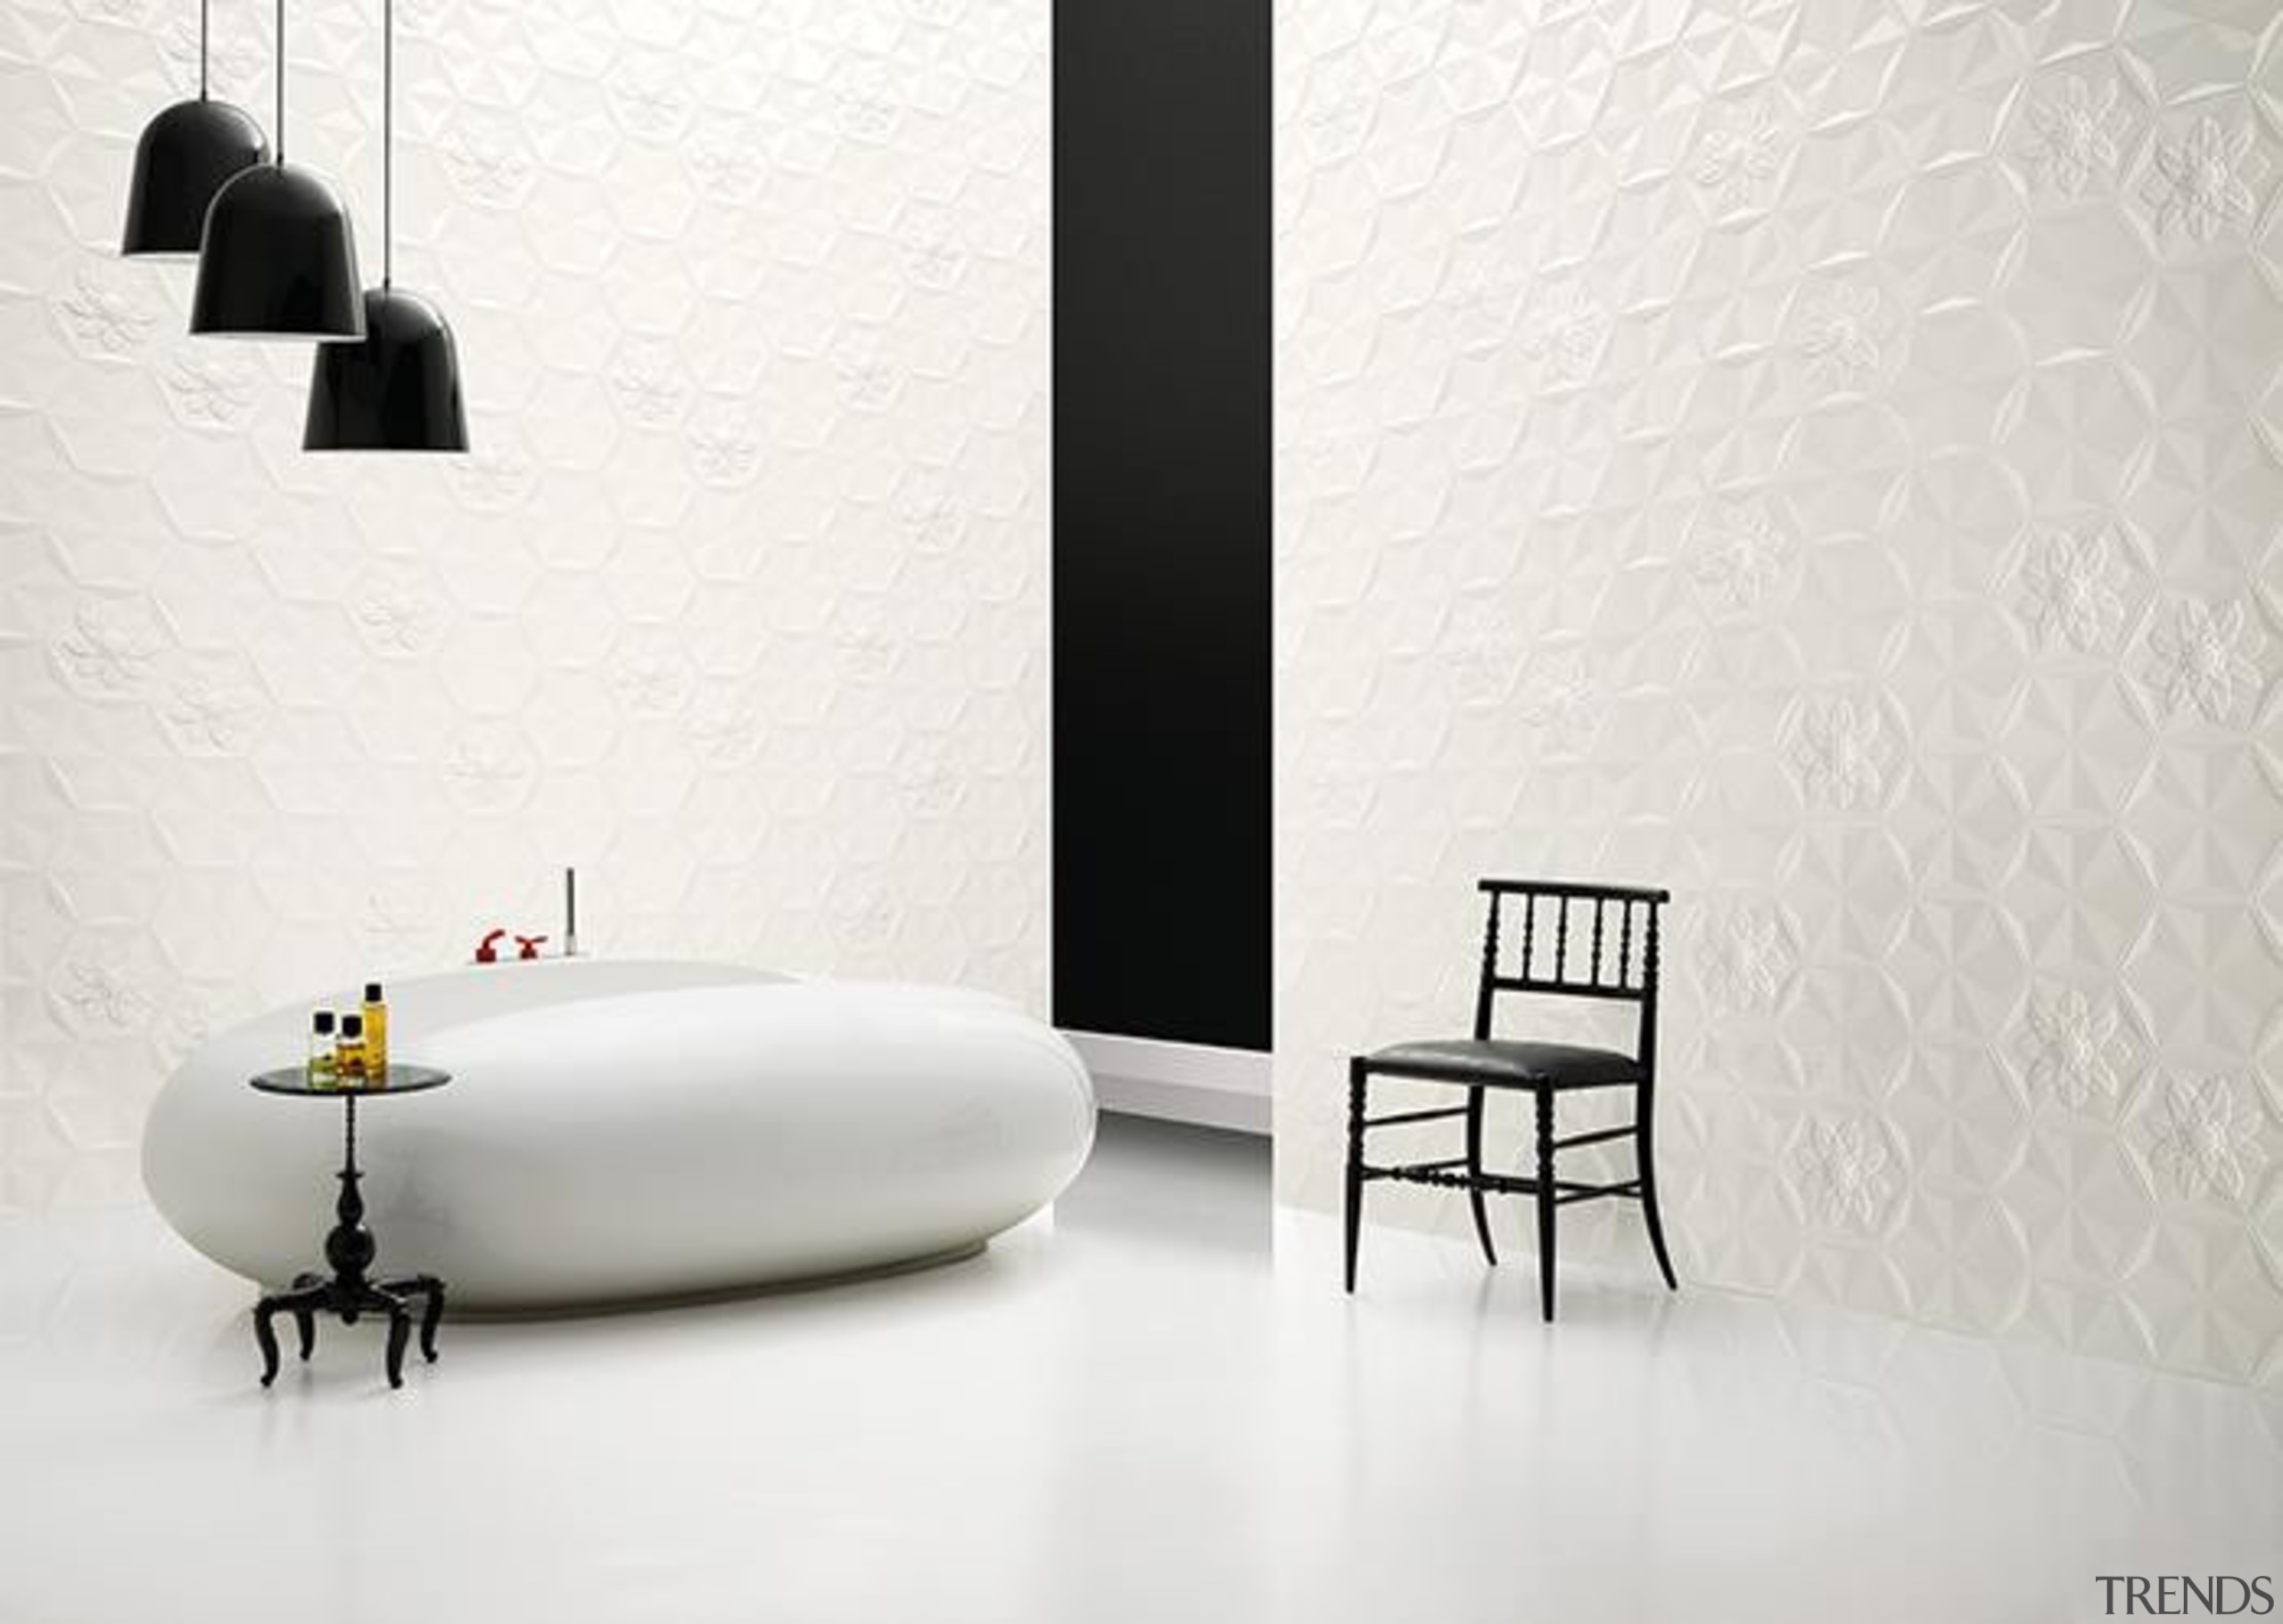 Different designs can be achieved by mixing and black and white, floor, flooring, furniture, interior design, table, tap, wall, wallpaper, white